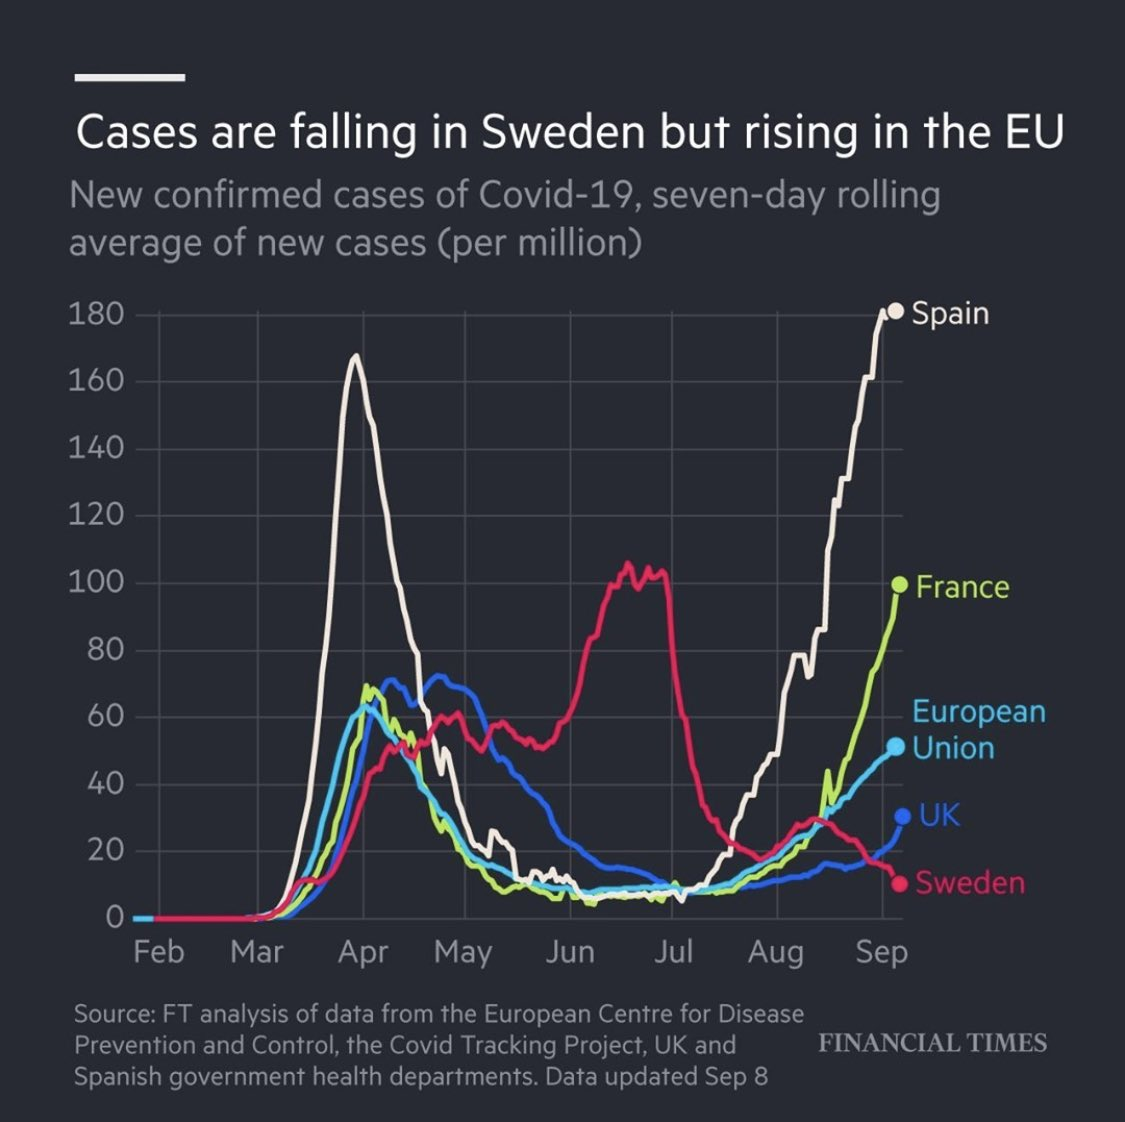 Time to thank Sweden for being the control in the science experiment and act accordingly. https://t.co/m4atGods7y